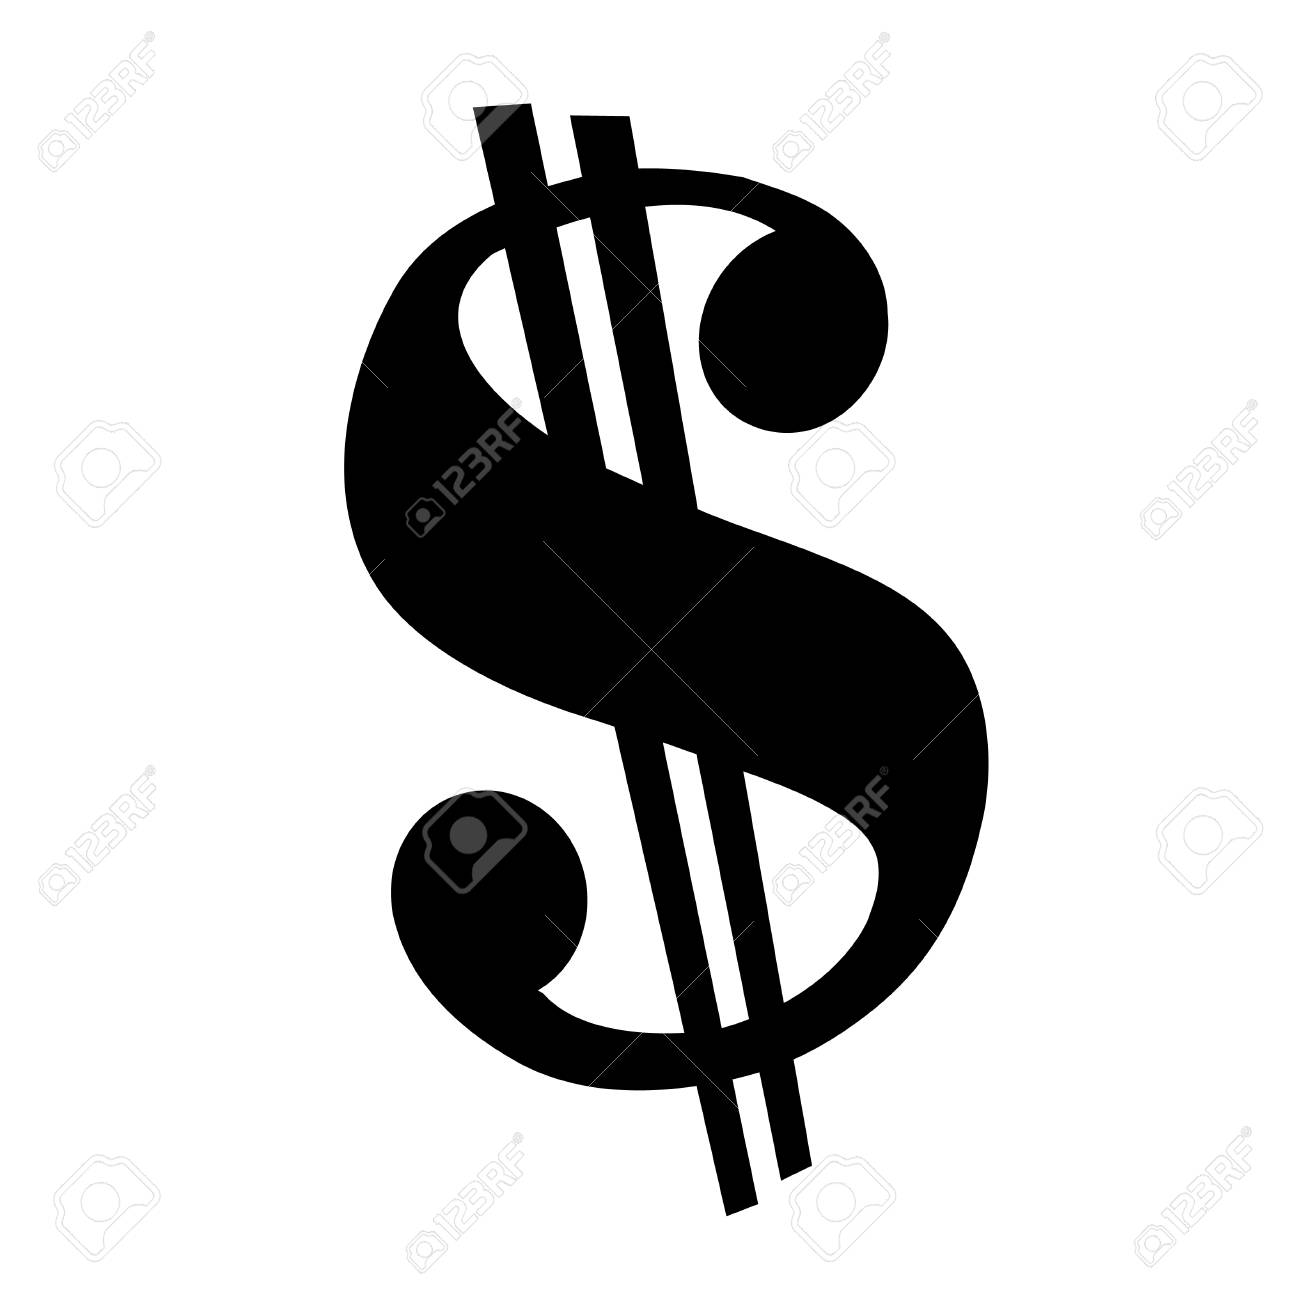 dollar sign vector icon royalty free cliparts vectors and stock rh 123rf com dollar sign vector free download dollar sign vector icon